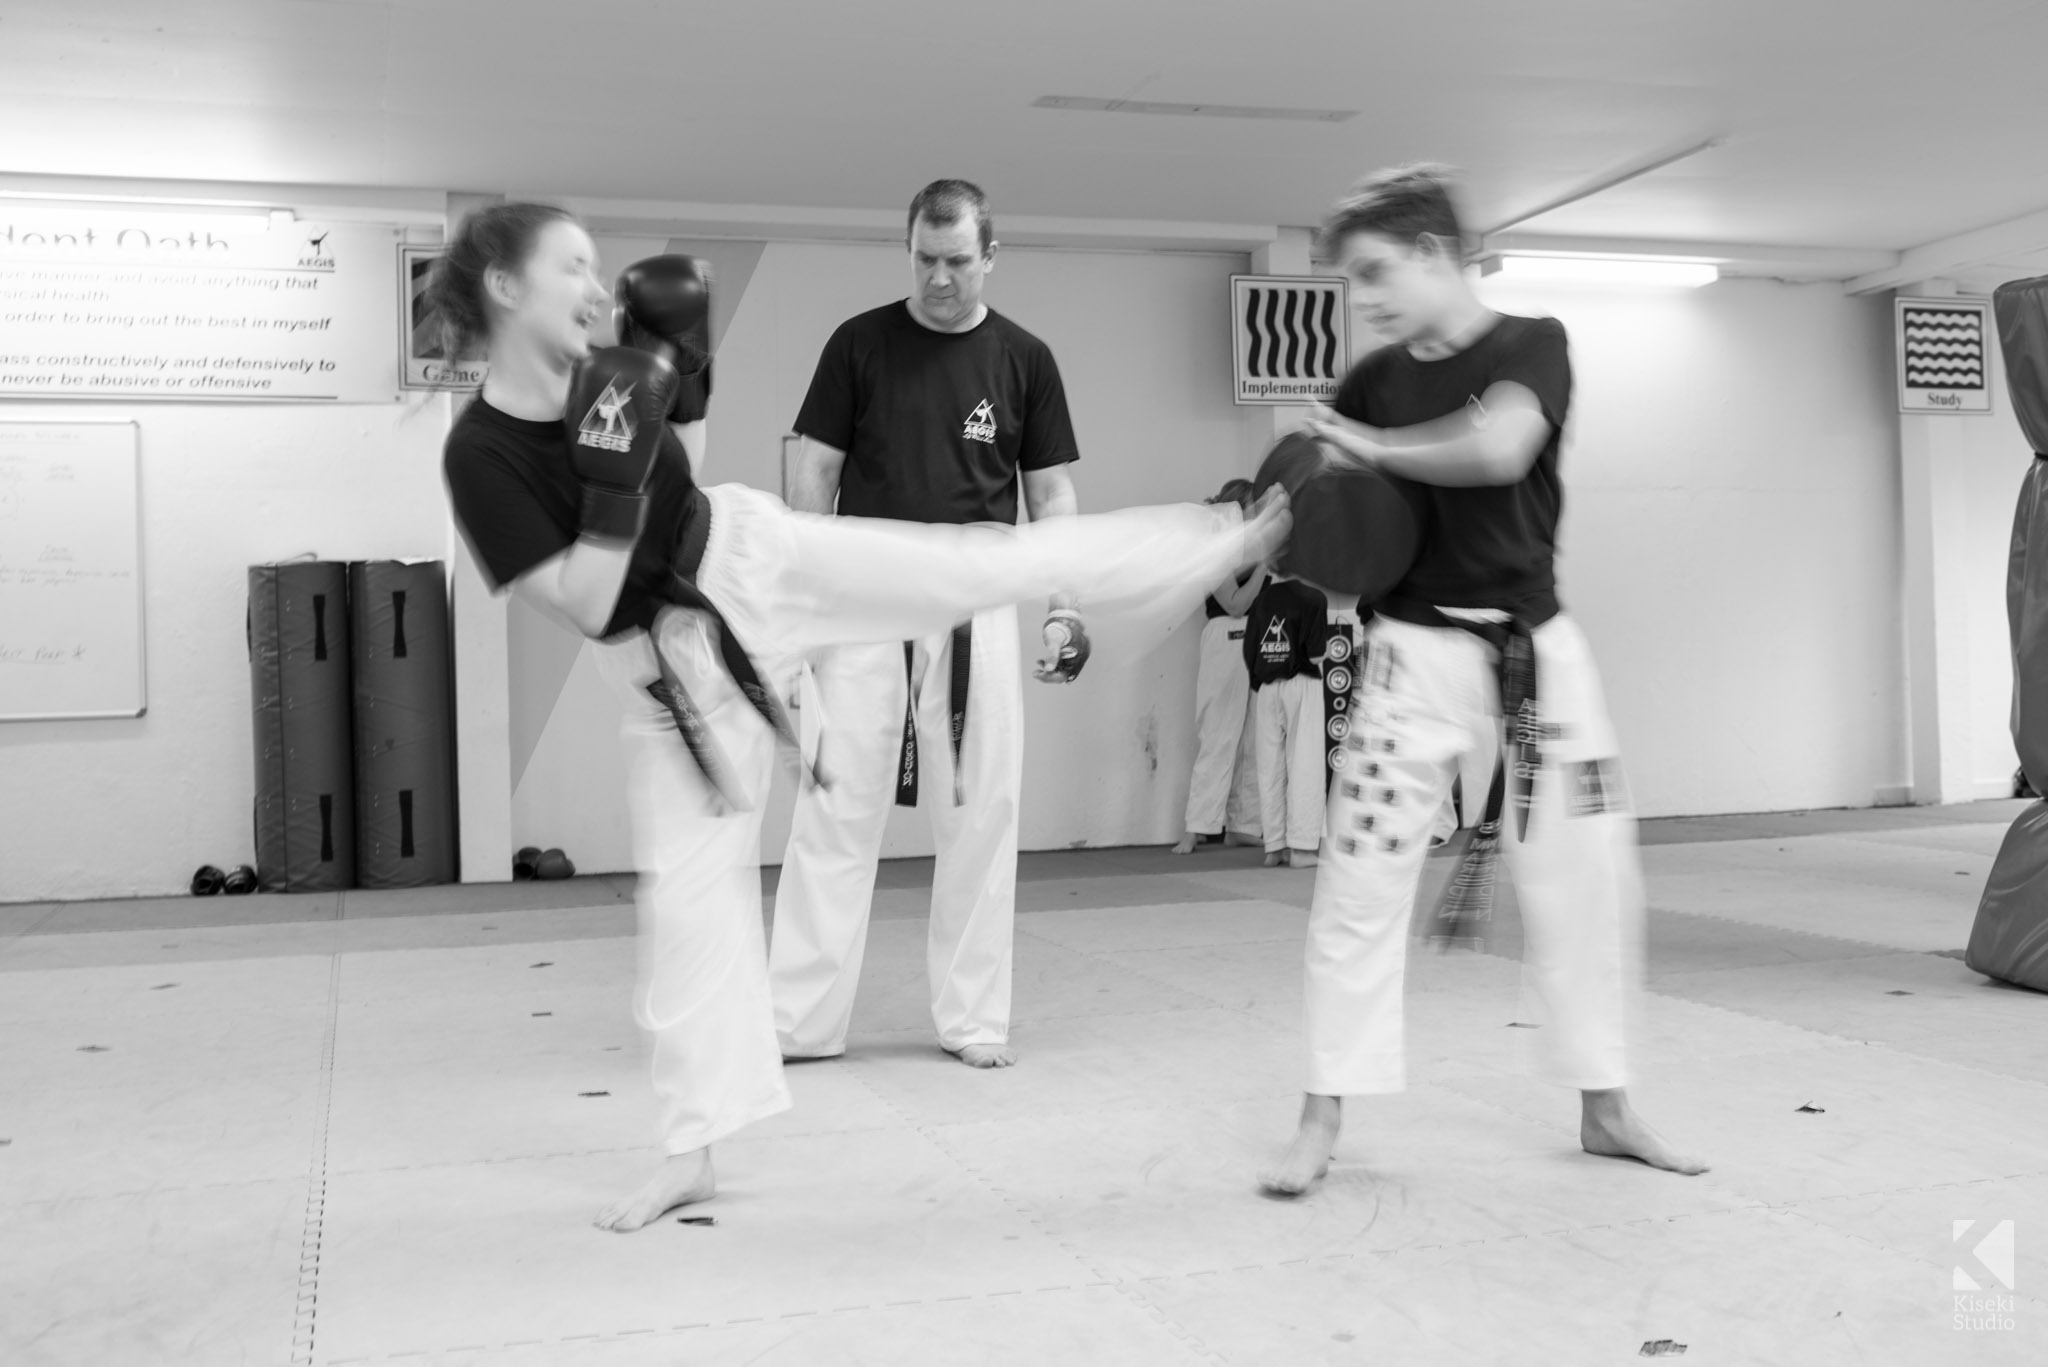 aegis-martial-arts-class-leeds-training-kicks